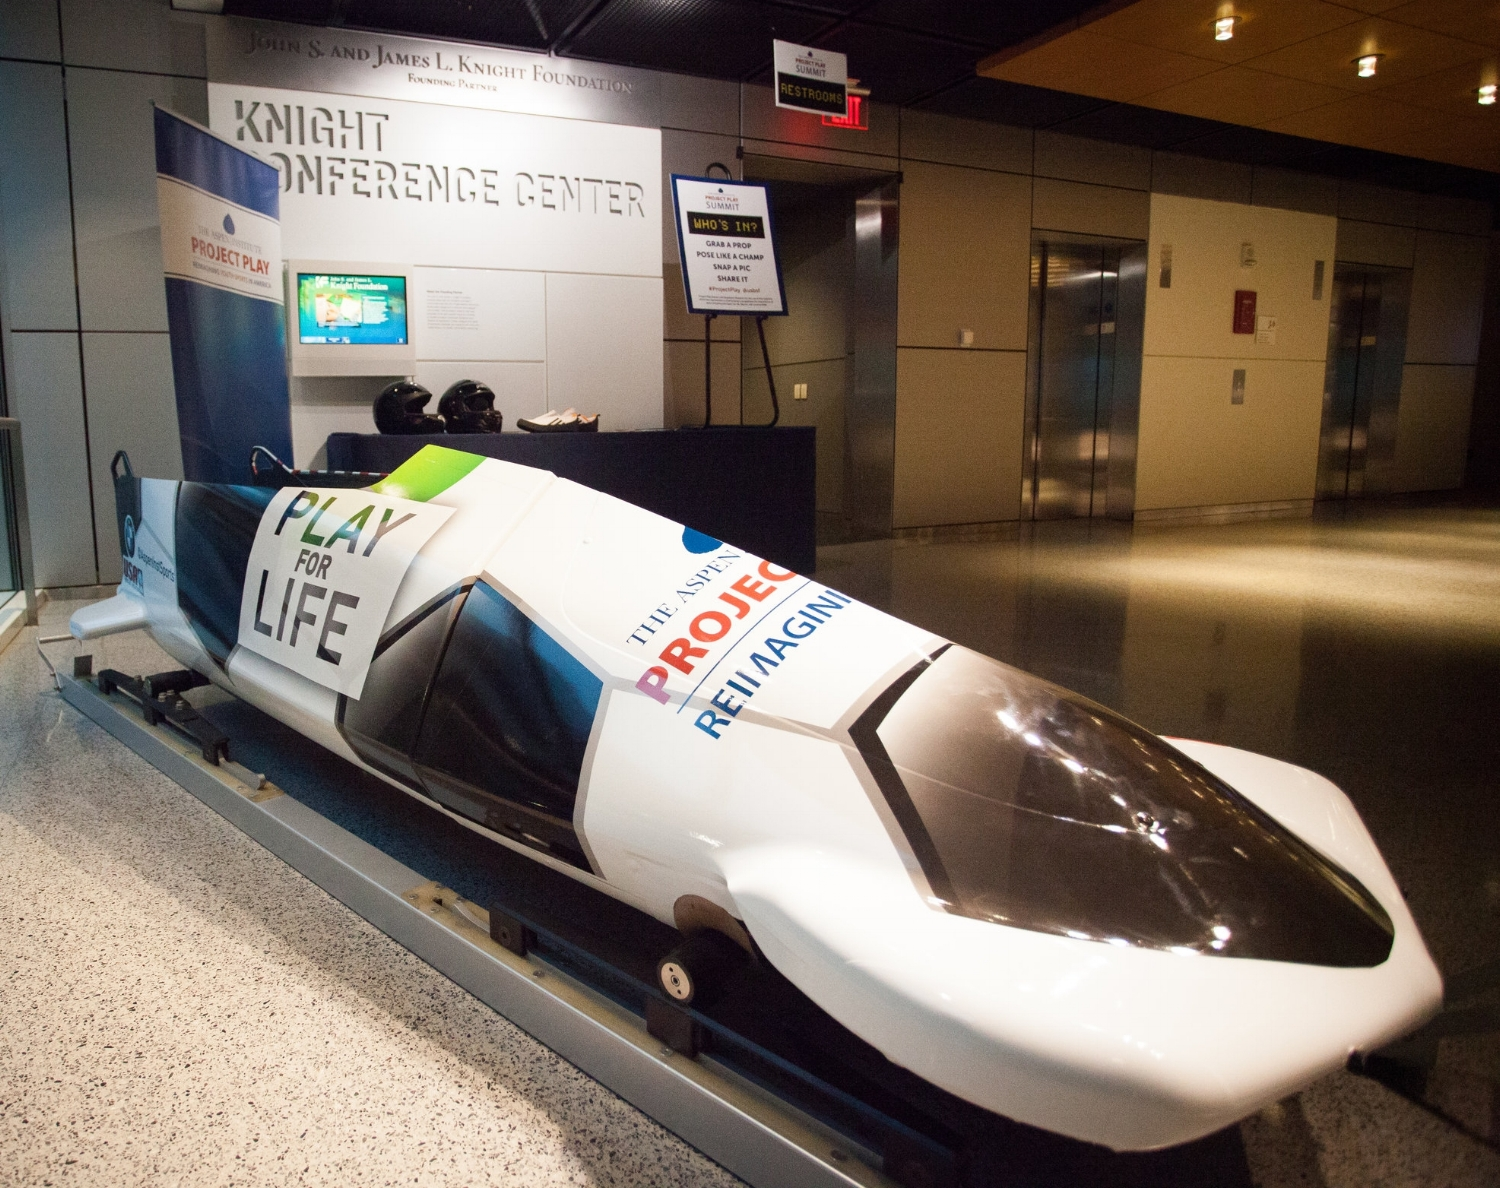 Project Play Bobsled - At the 2017 Project Play Summit, USA Bobsled & Skeleton provided a Sport for All, Play for Life bobsled that is currently active on the professional racing circuit.